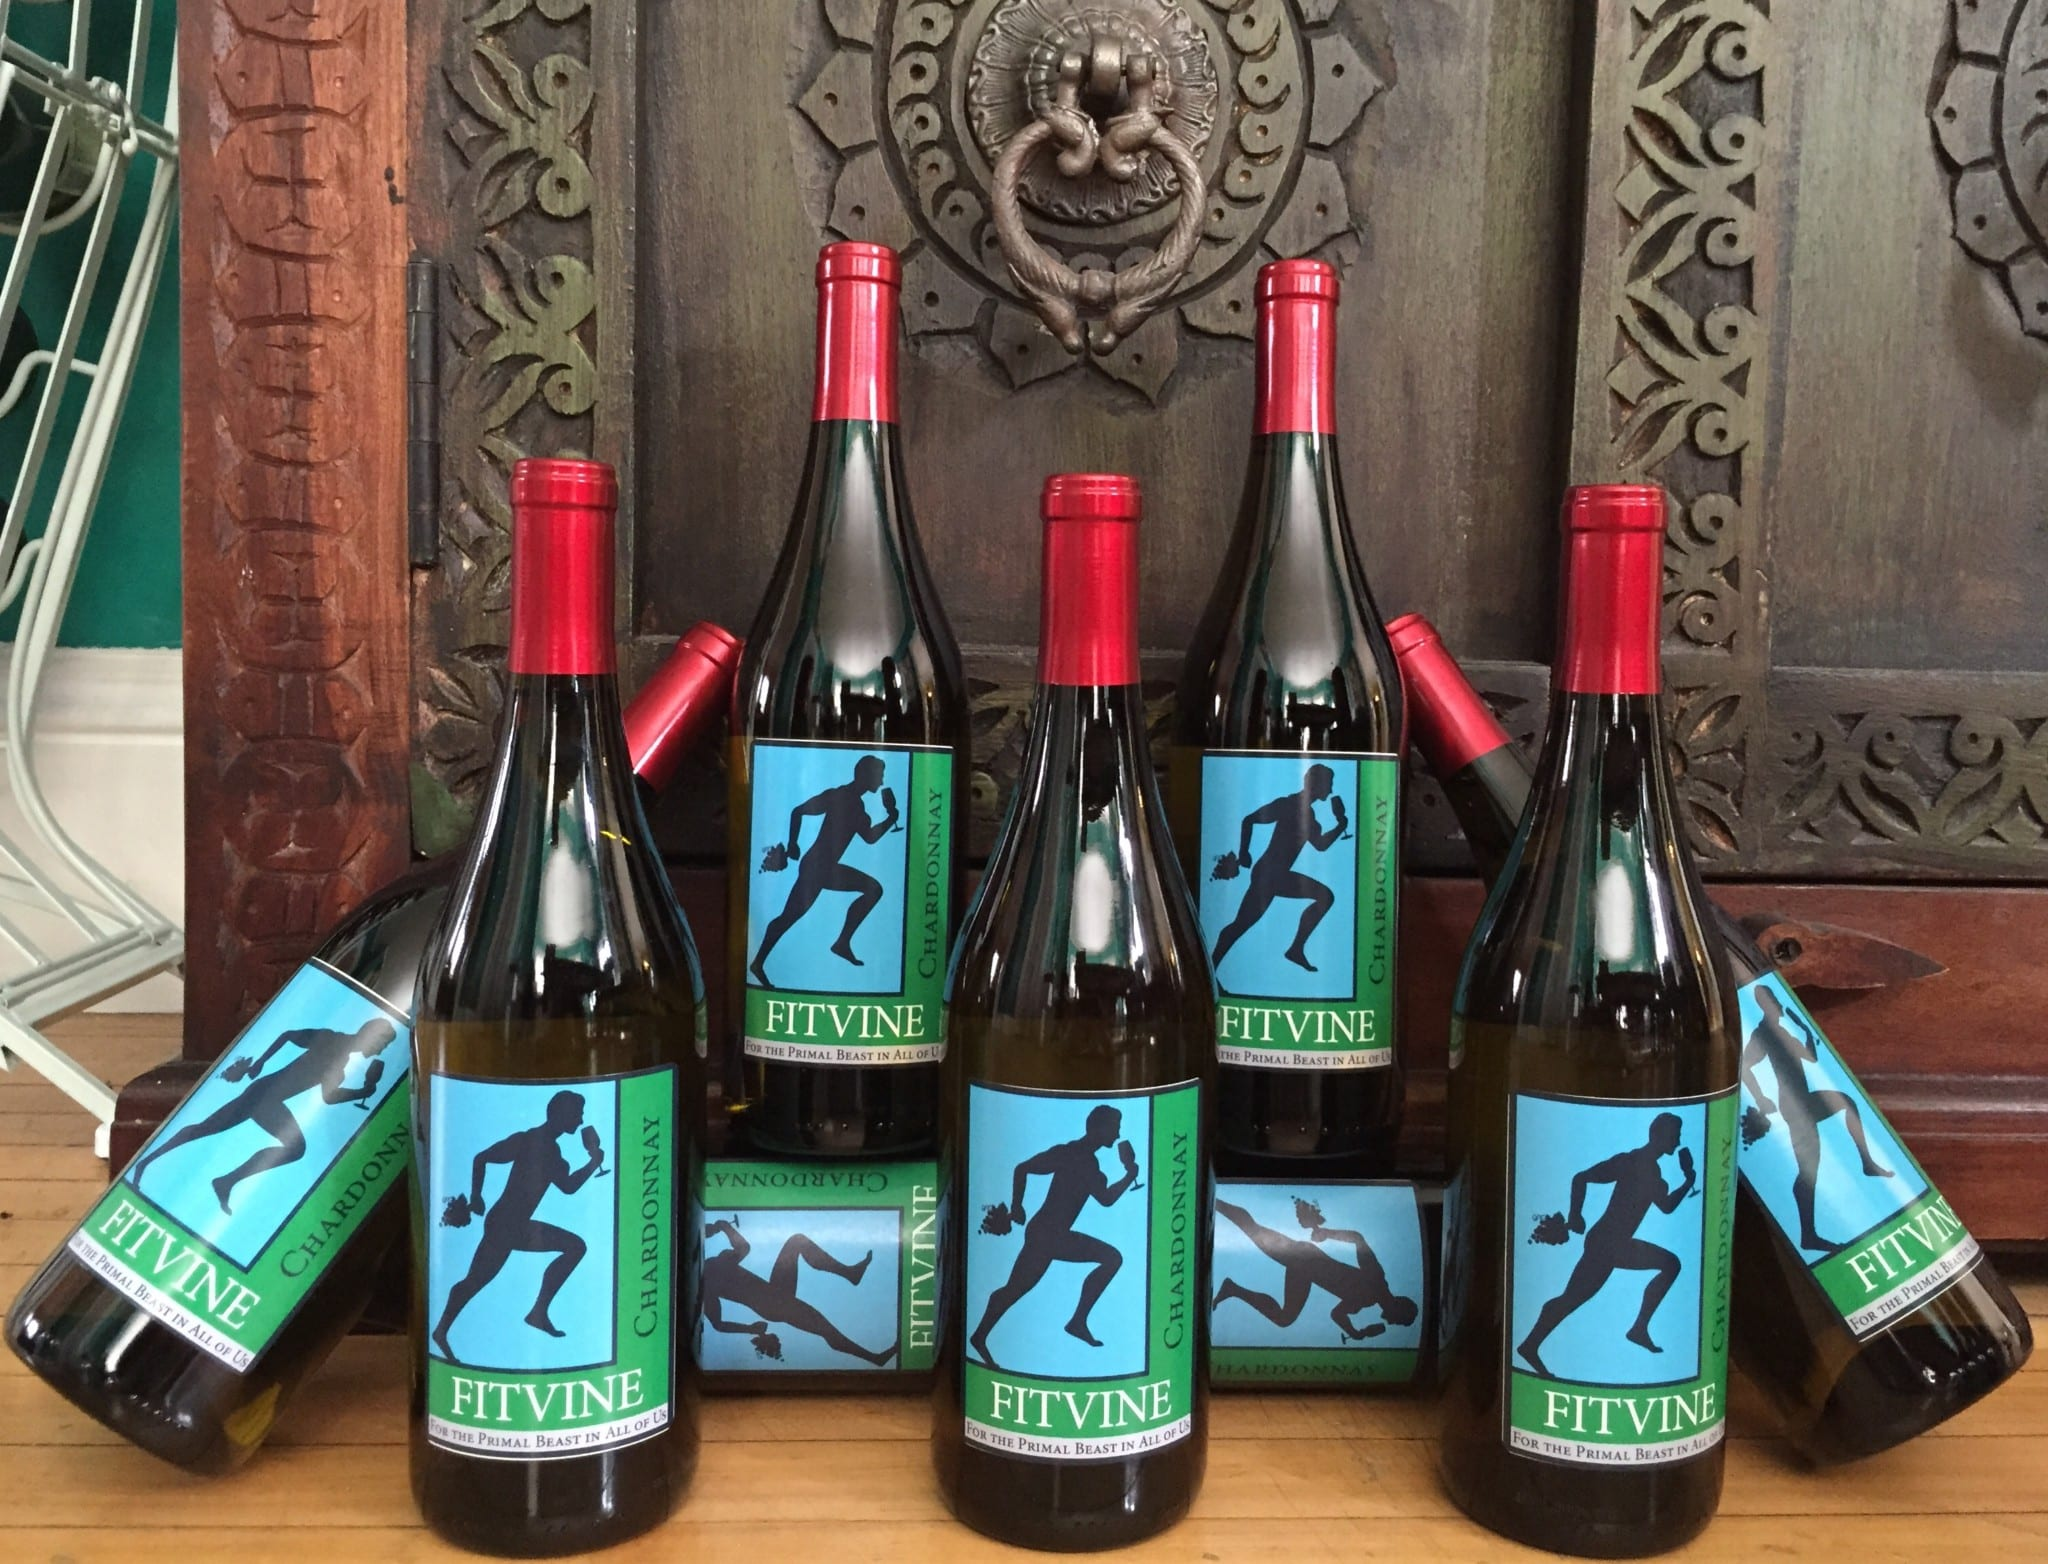 The wine is currently sold online at http://fitvinewine.com .